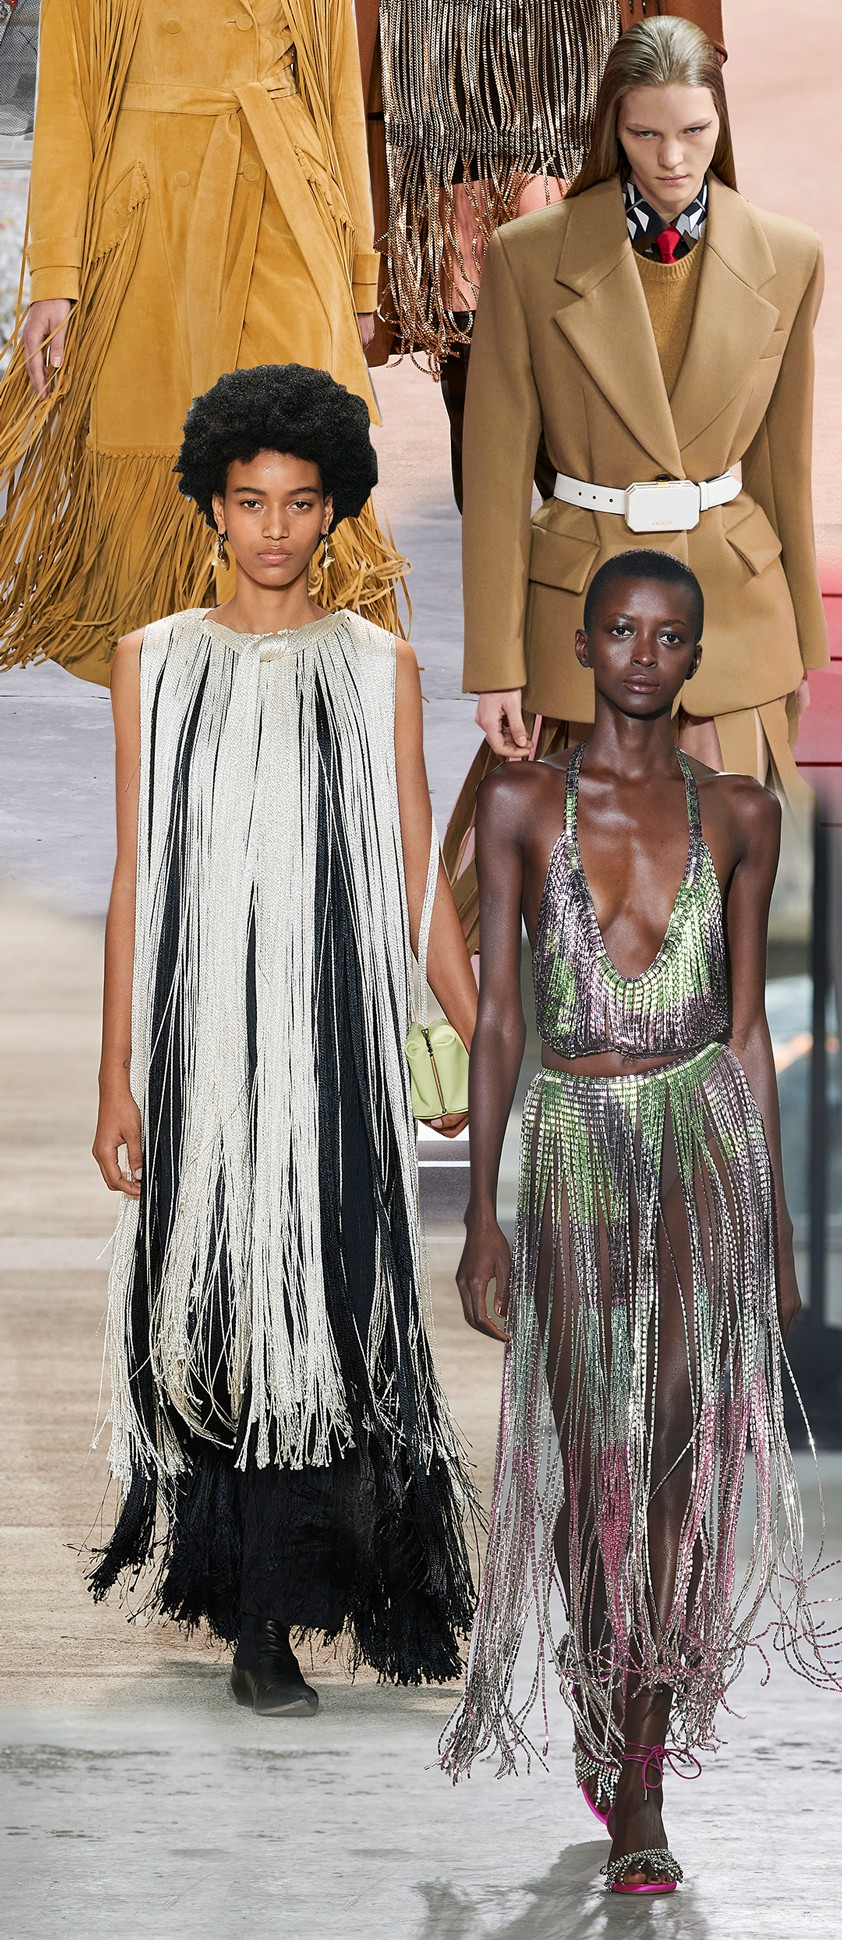 The Hottest And Most Coveted Fashion Trends From The Fall 2020 Runways (20) fashion trend The Hottest And Most Coveted Fashion Trends From The Fall 2020 Runways The Hottest And Most Coveted Fashion Trends From The Fall 2020 Runways 20